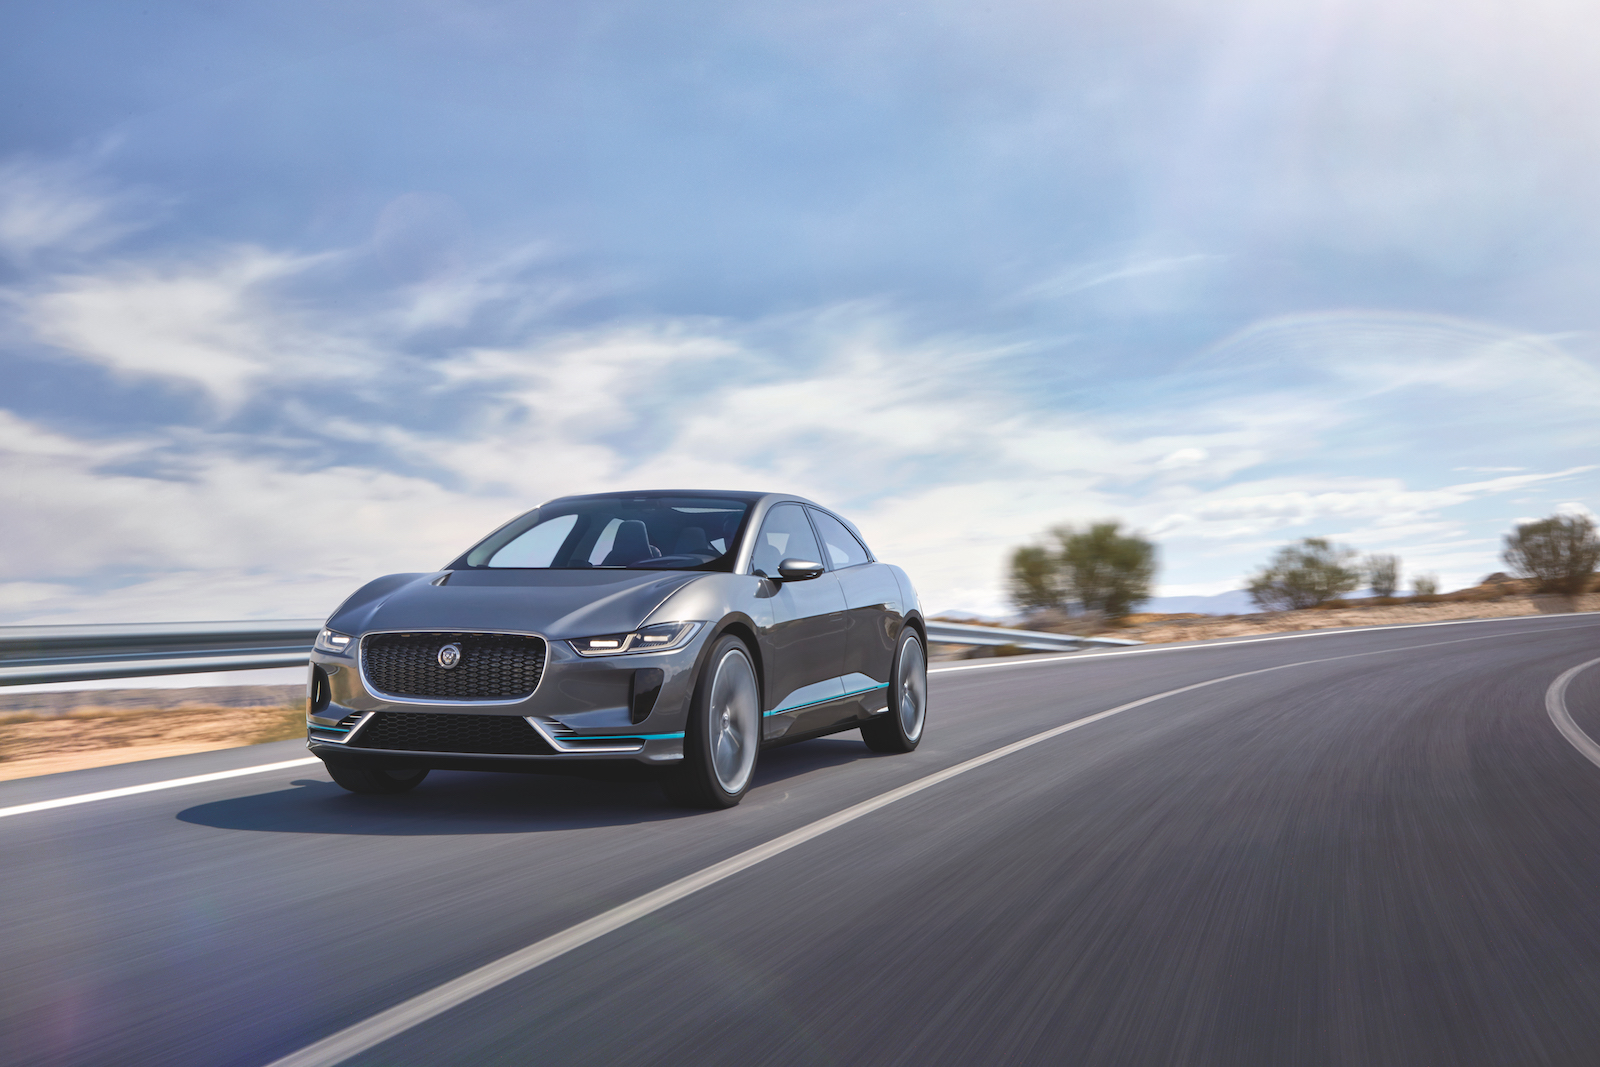 new-electric-jaguar-i-pace-crossover-concept-23